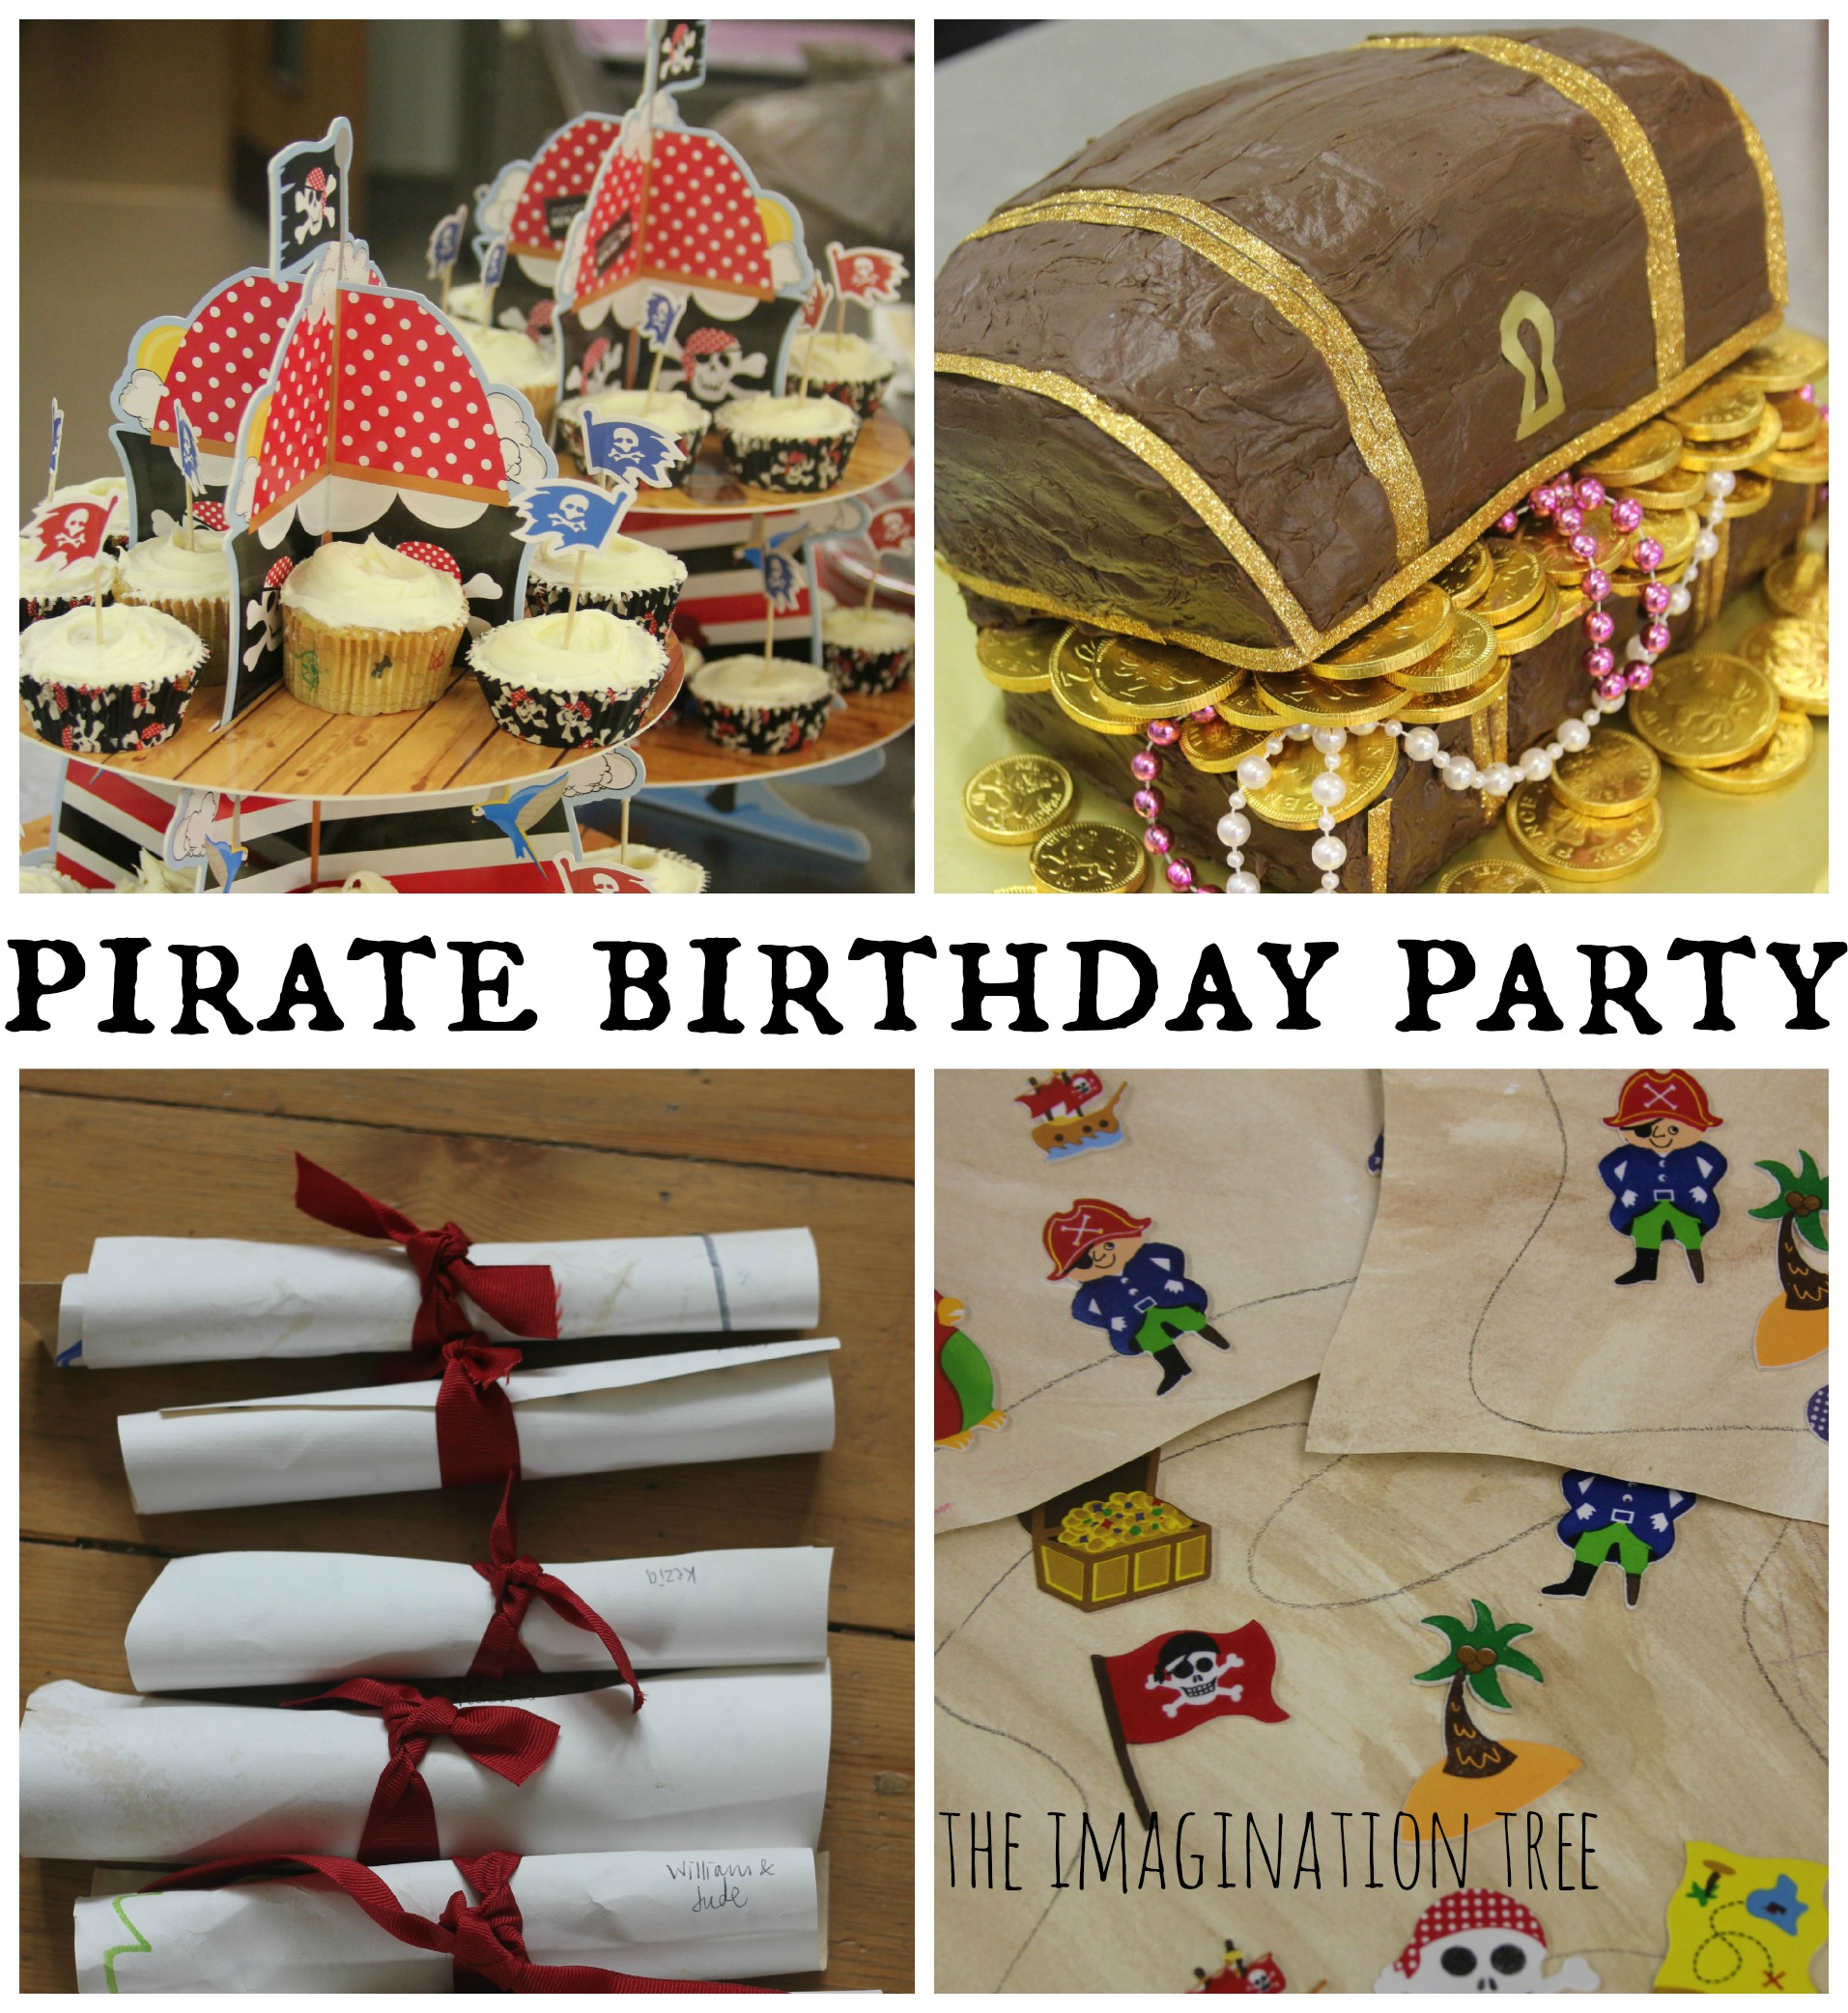 Pirate Birthday Party The Imagination Tree